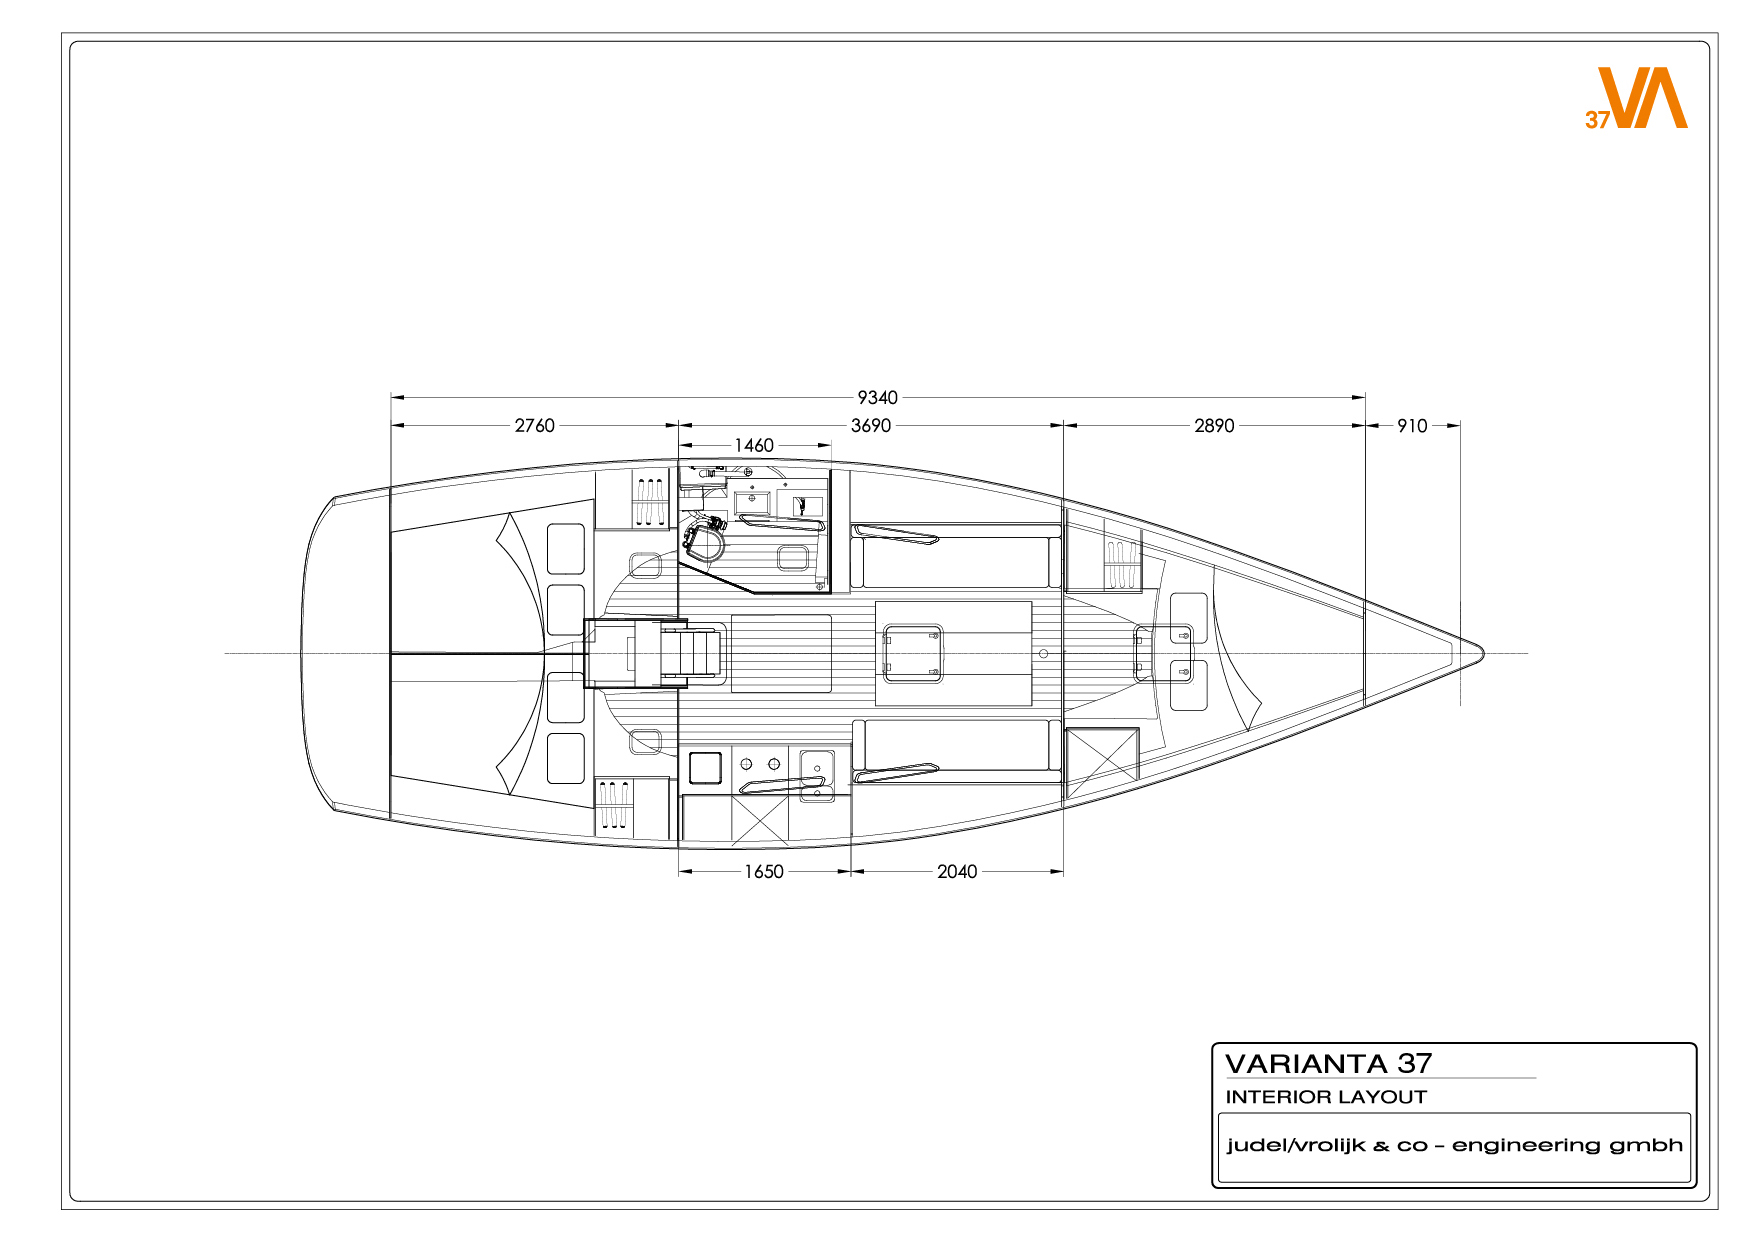 Varianta 37 - VARIANTA37_Interior_layout_low-c3328-1.jpg